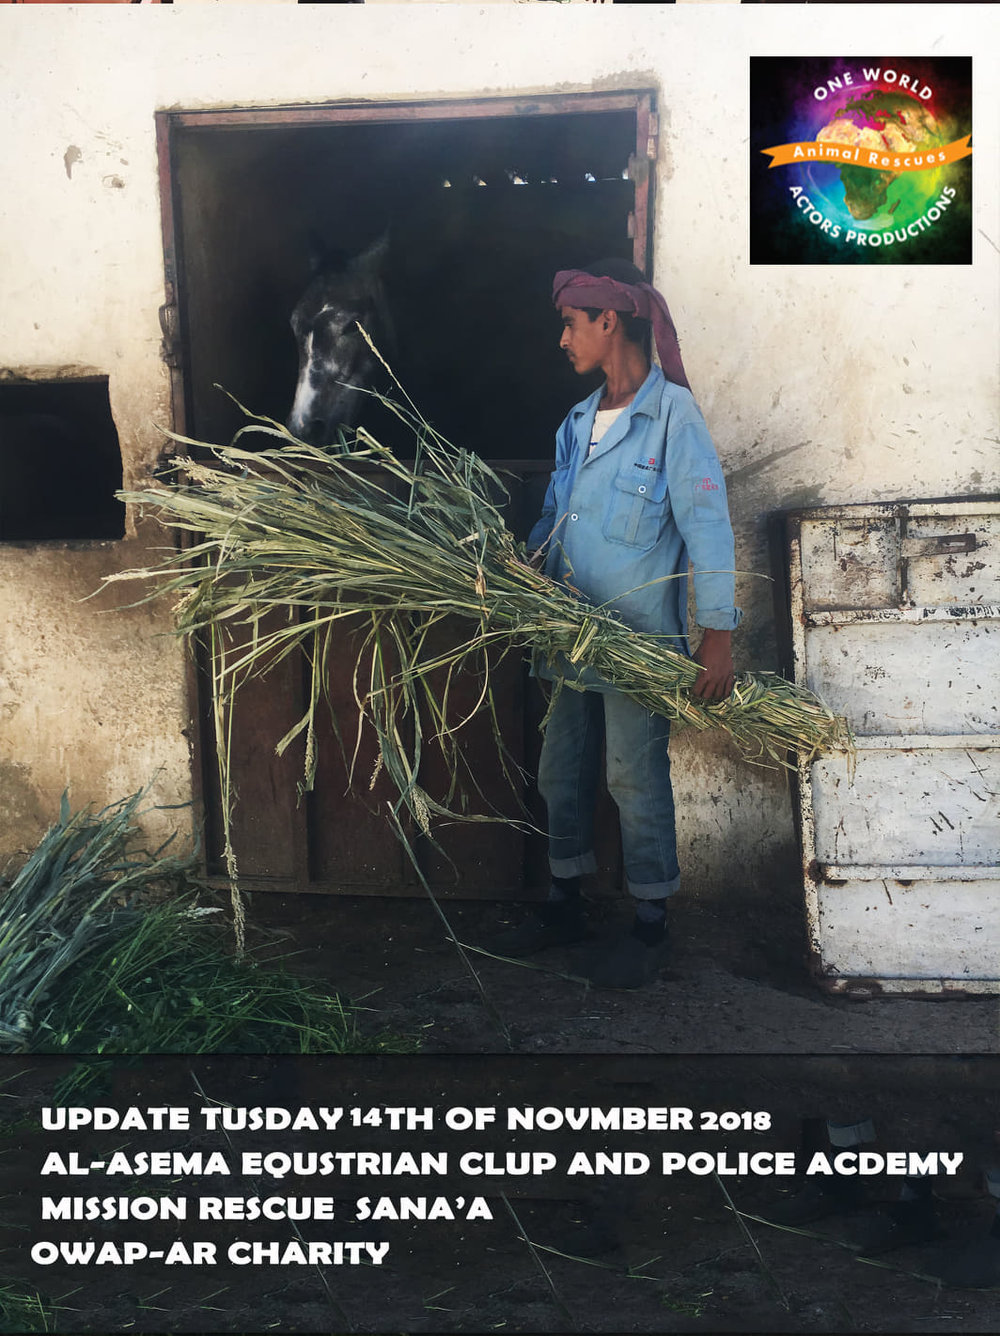 riding club horse eating our delivery of persim sana'a yemen rescue delivery today to club and to police ac 14 nov 2018 by OWAp-AR nada pic correct.jpg